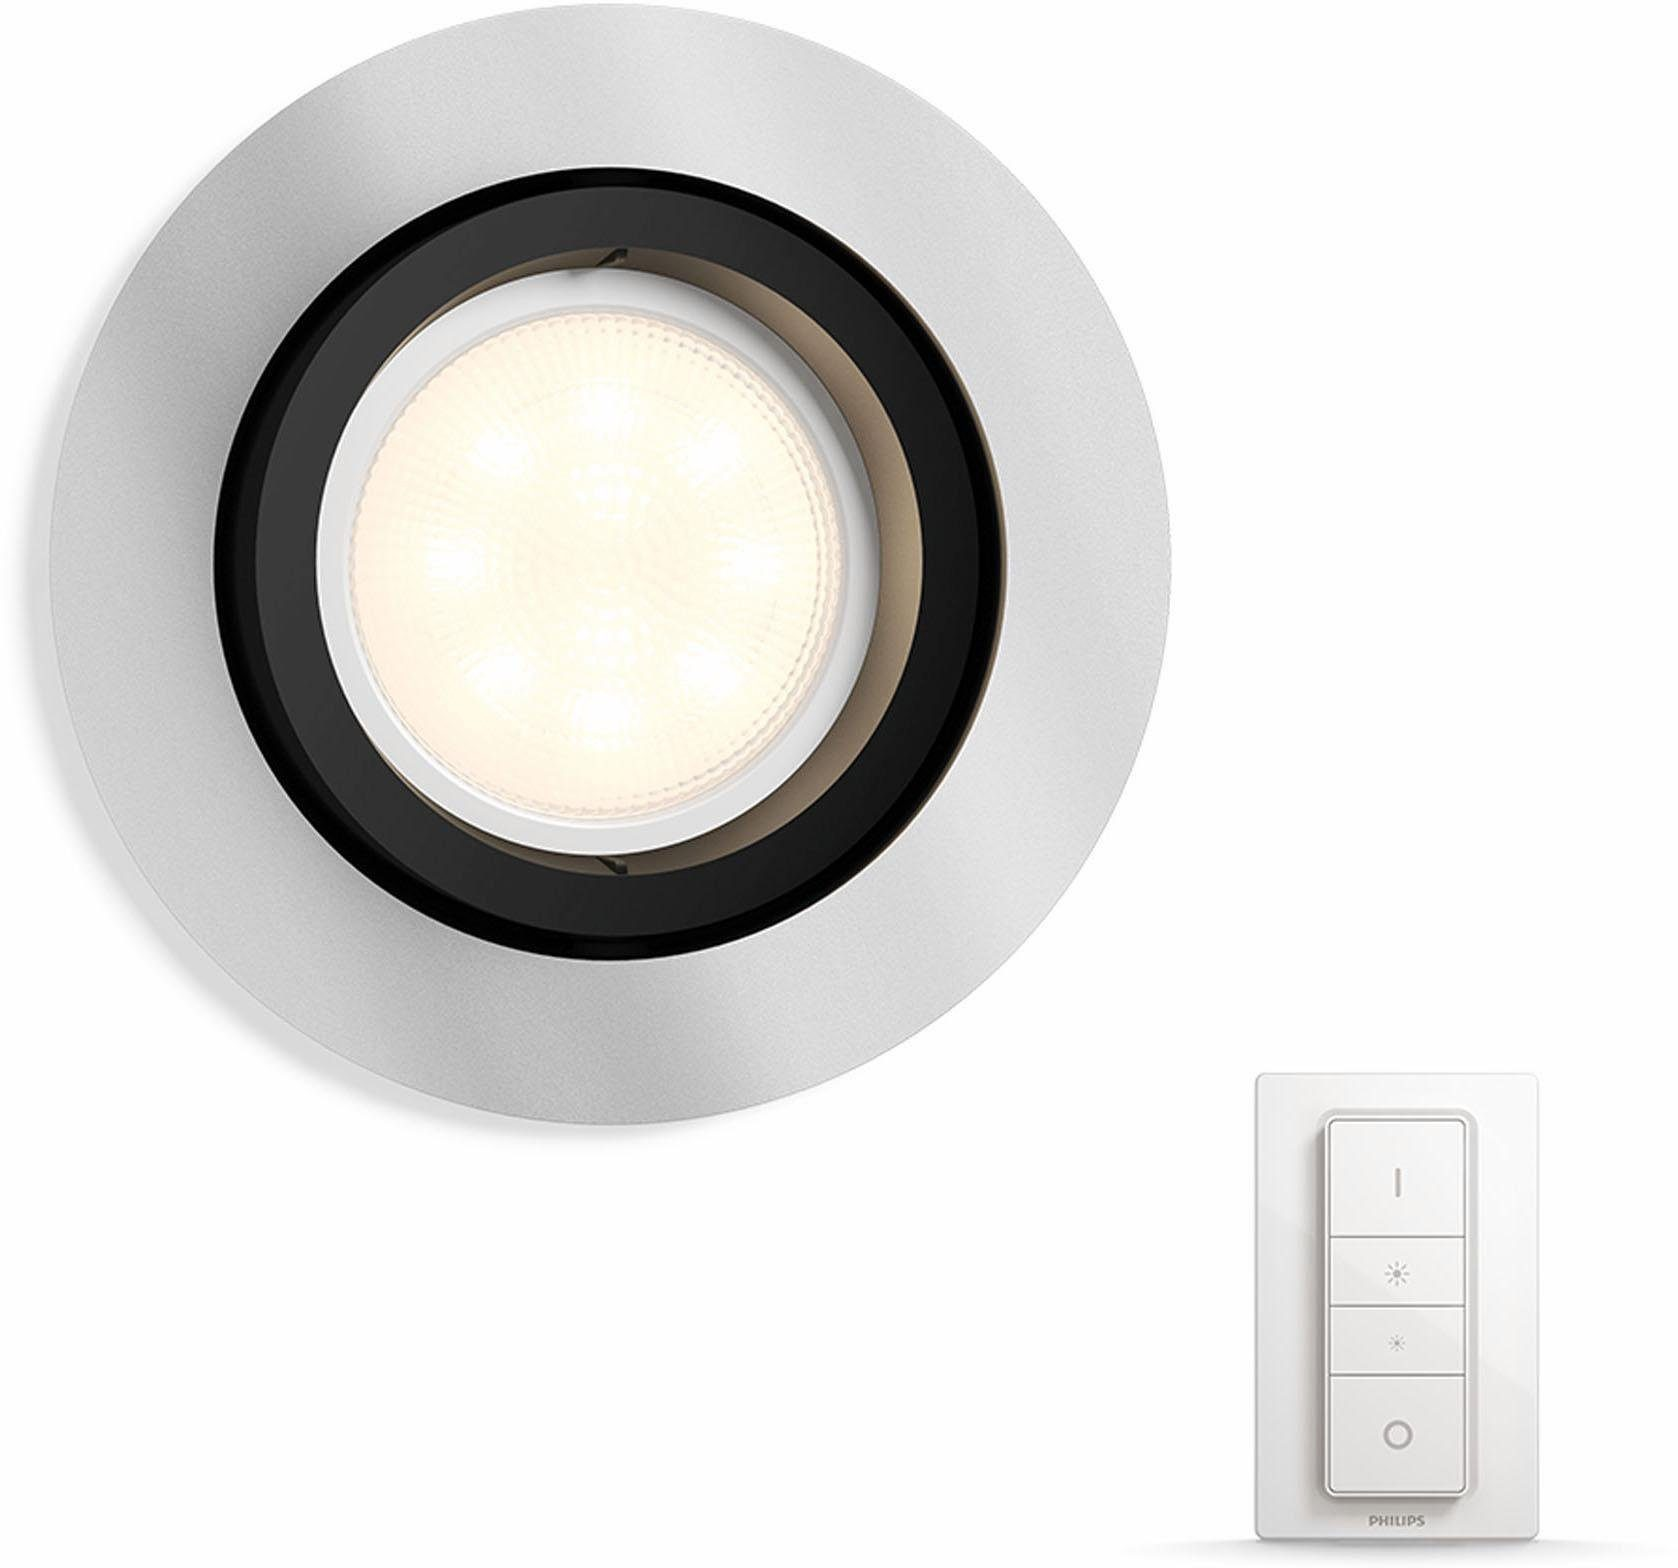 Philips Hue LED Einbaustrahler »Milliskin«, 1-flammig, Smart Home